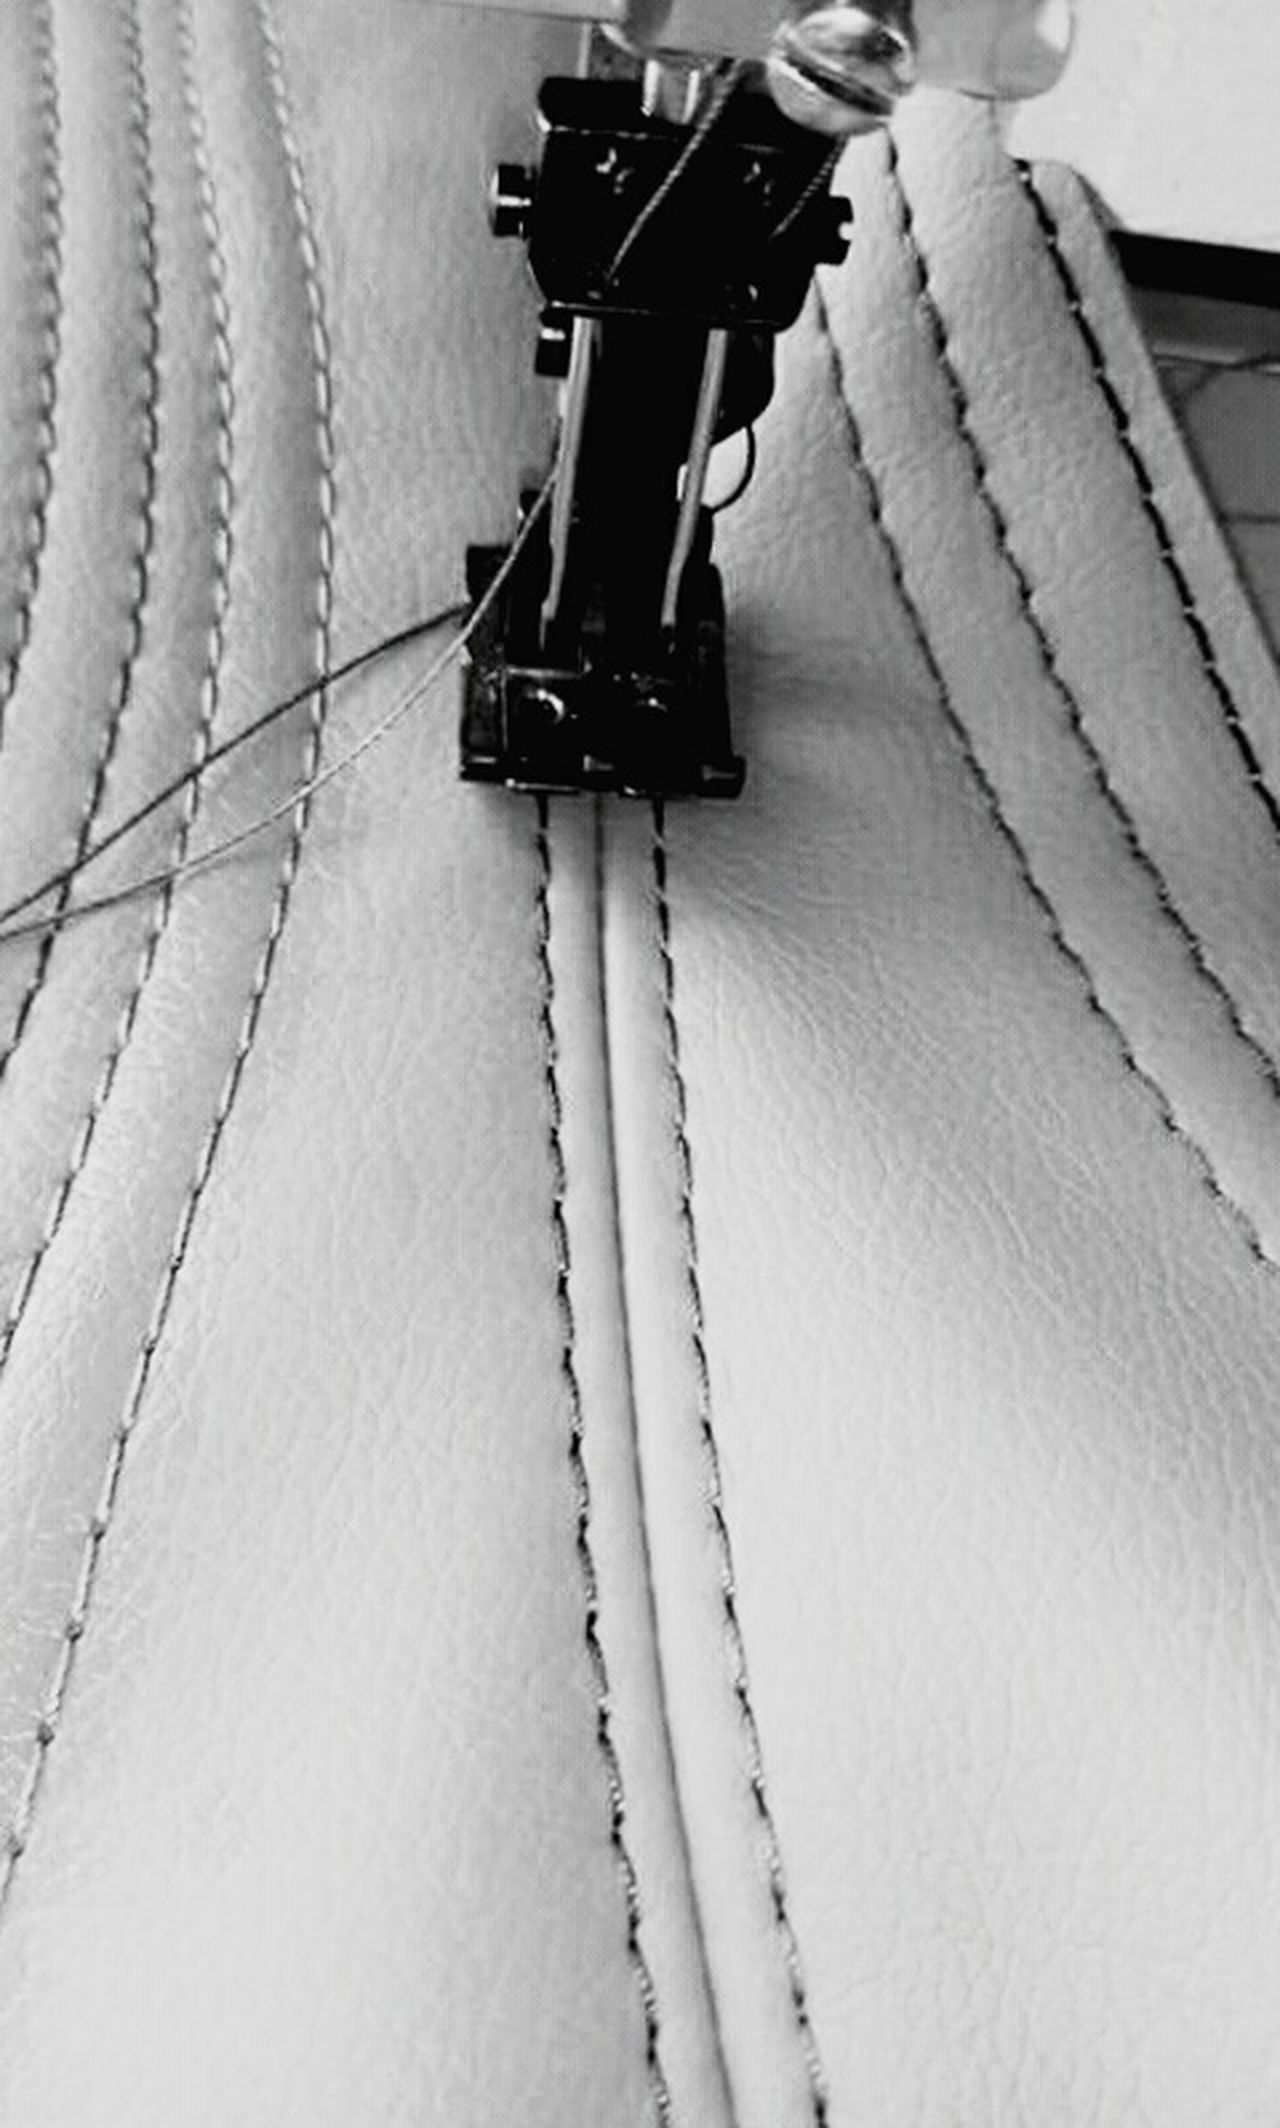 Maquina De Costura Coser Blackandwhite Black And White Black & White Blackandwhite Photography Black And White Photography Black&white Black And White Collection  Black And White Portrait Blanco Y Negro Blancoynegro Blanco & Negro  Blanckandwhite